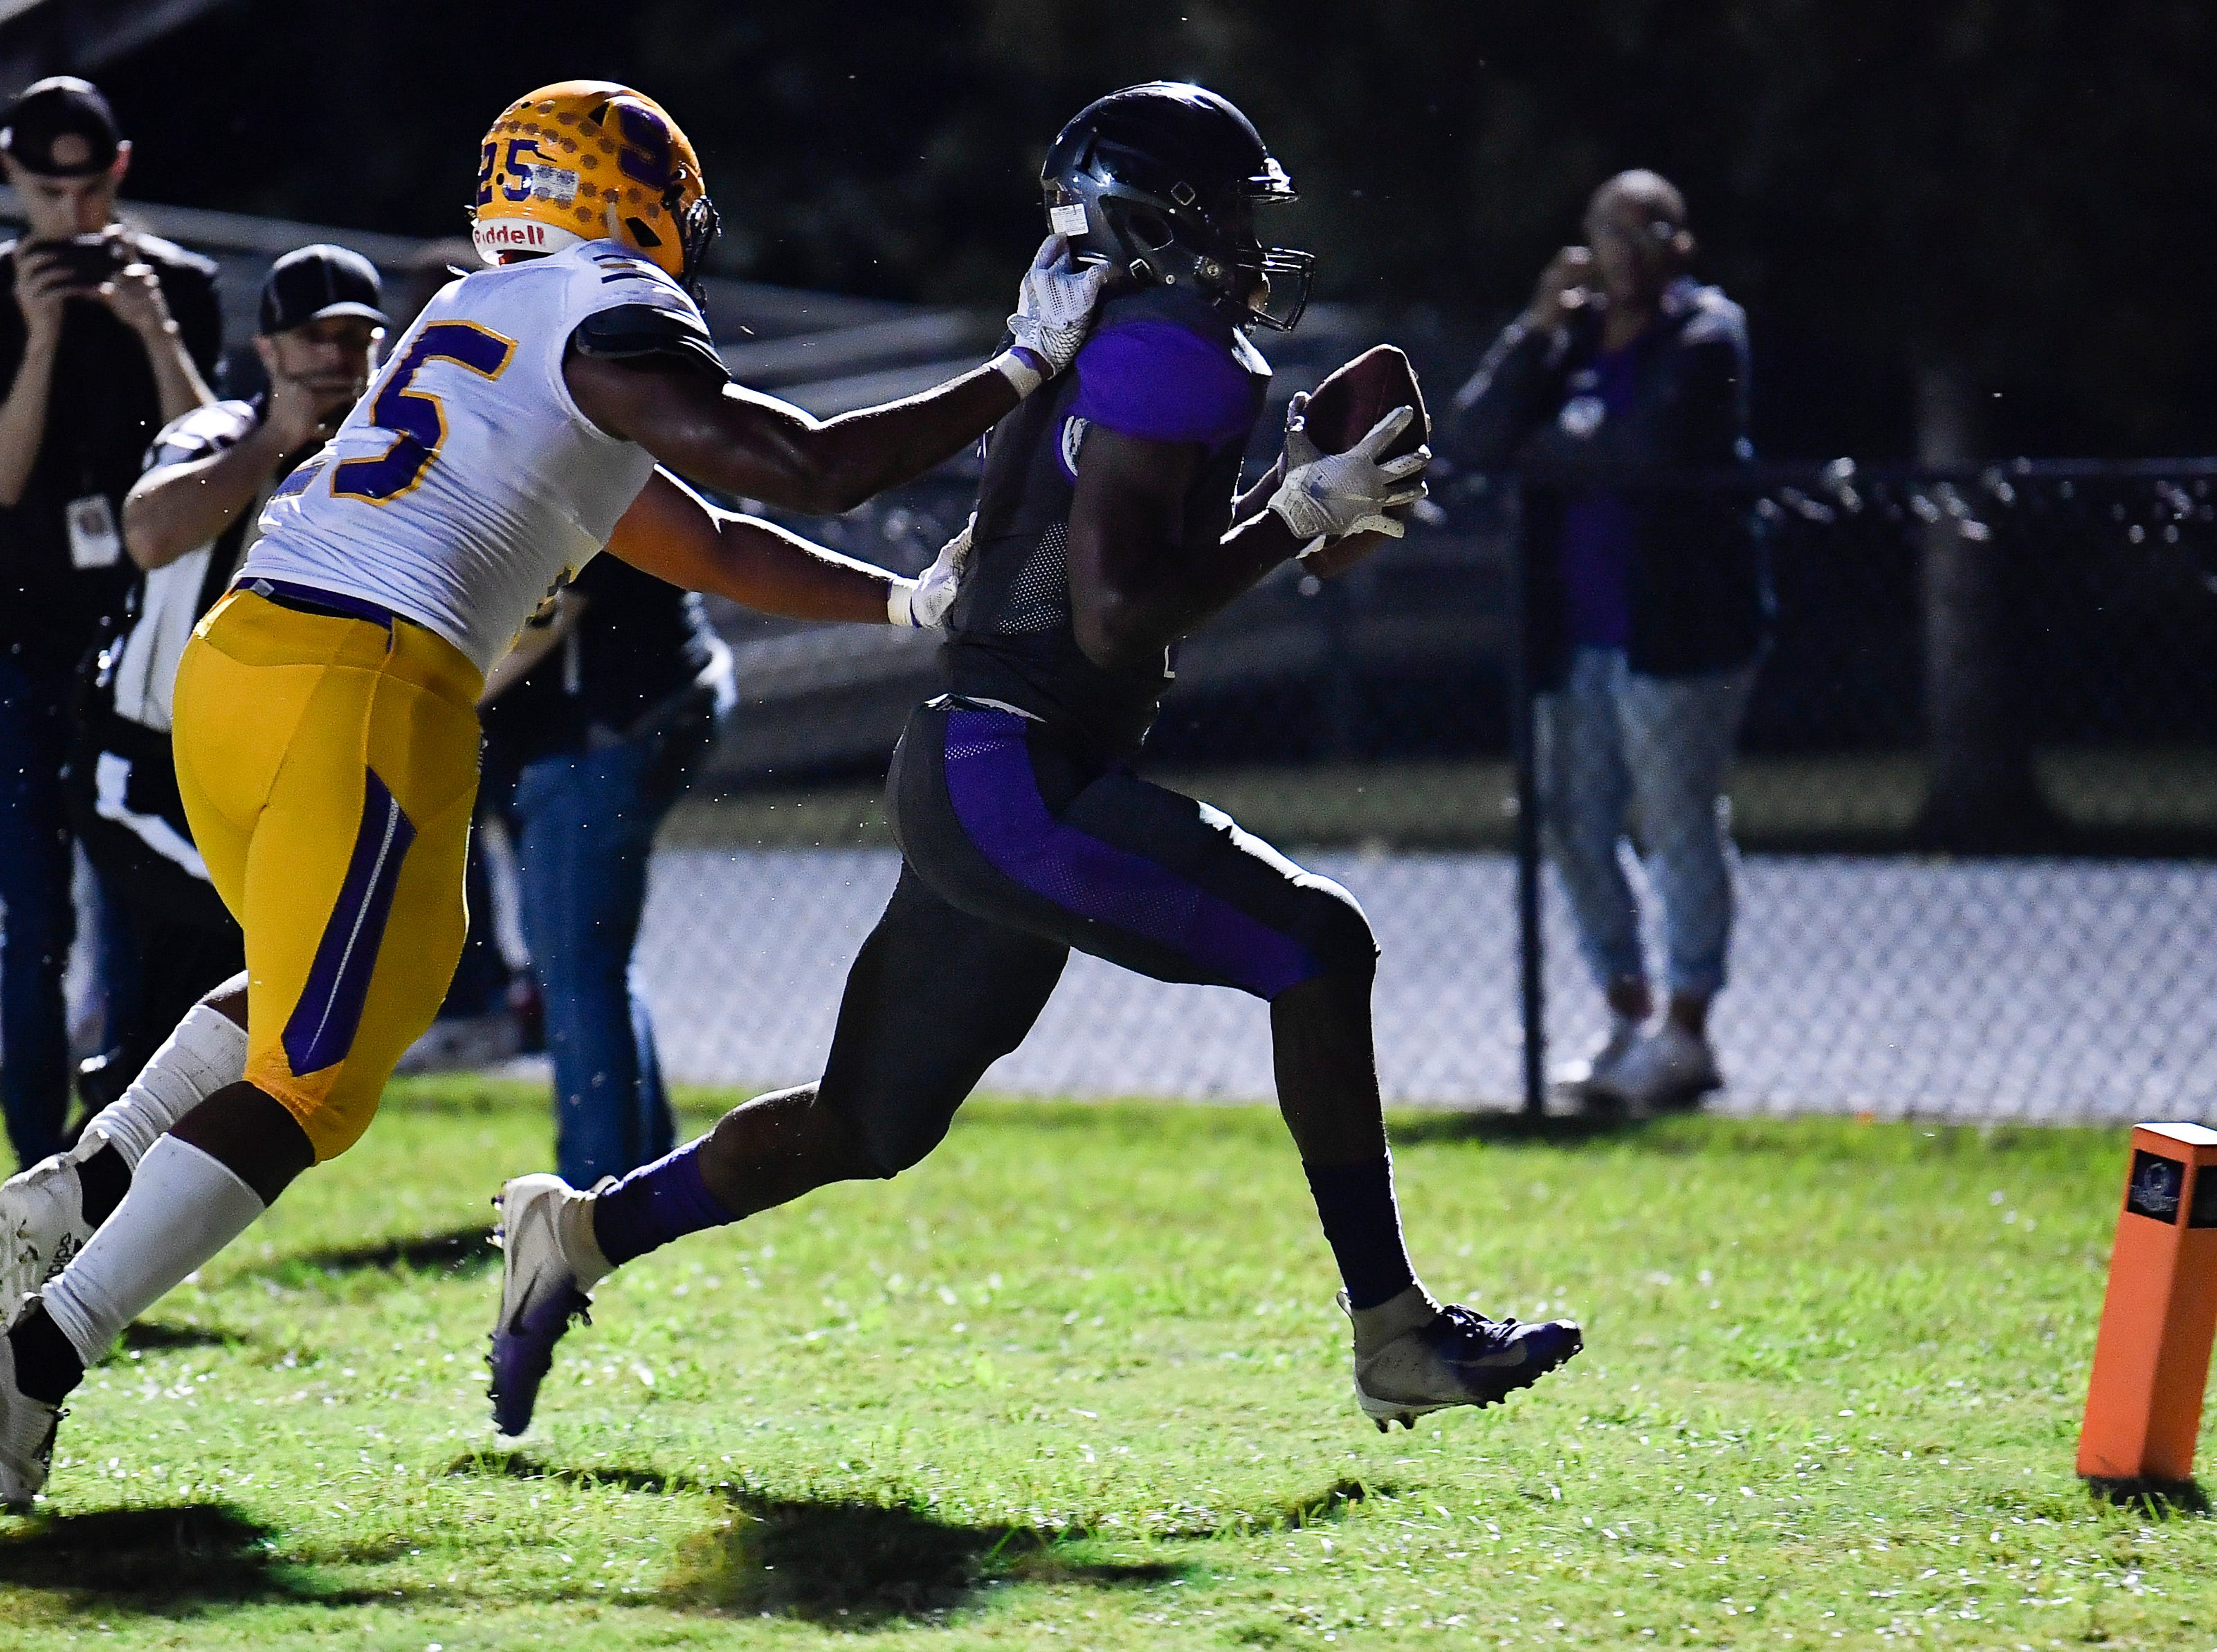 Cane Ridge Devon Starling (5) rushes in for a touchdown past Smyrna Josh Bailey (25) at Cane Ridge High School Friday, Sept. 21, 2018, in Nashville, Tenn.